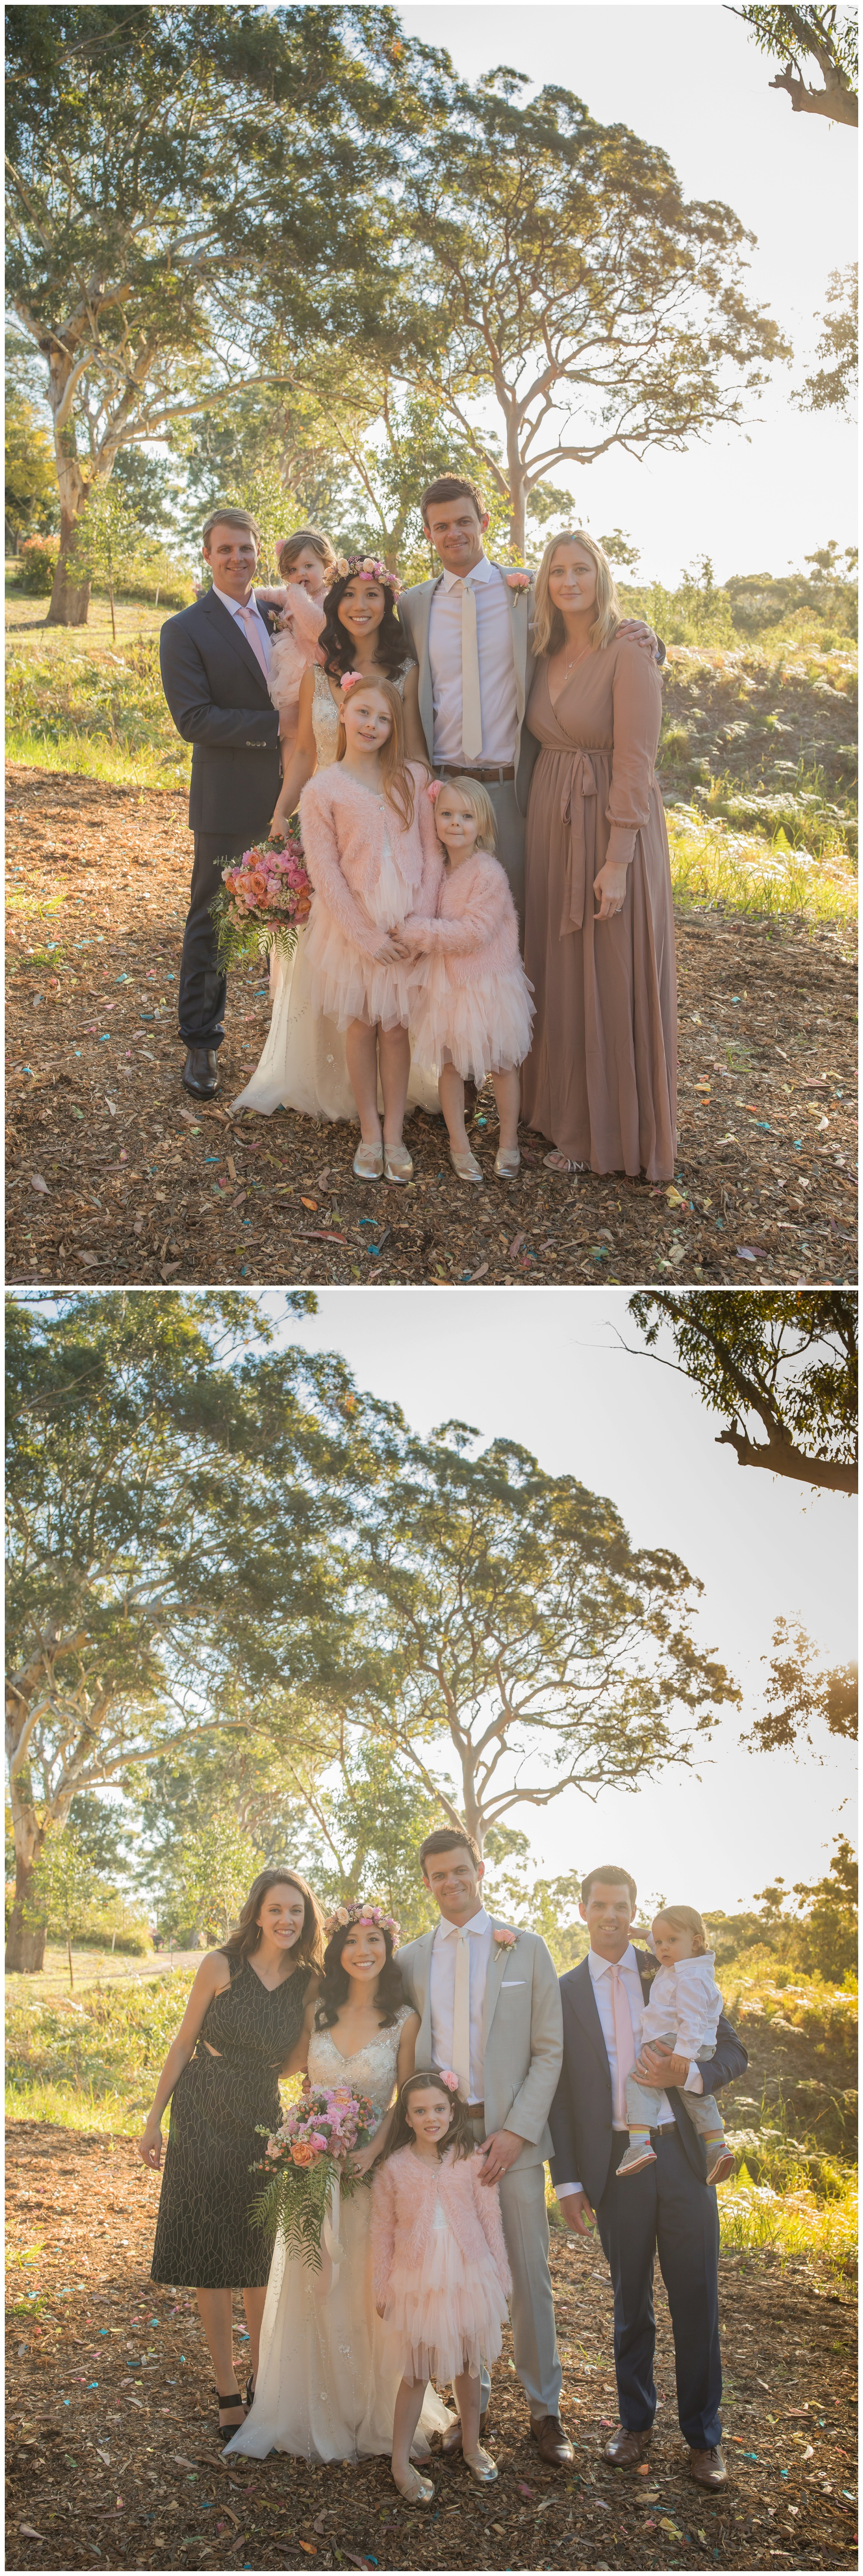 Country Wedding photographer, Nelson Bay wedding, Kangaroo Valley wedding photographer, Southern highlands photographer, bowral wedding photographer, southern highlands based